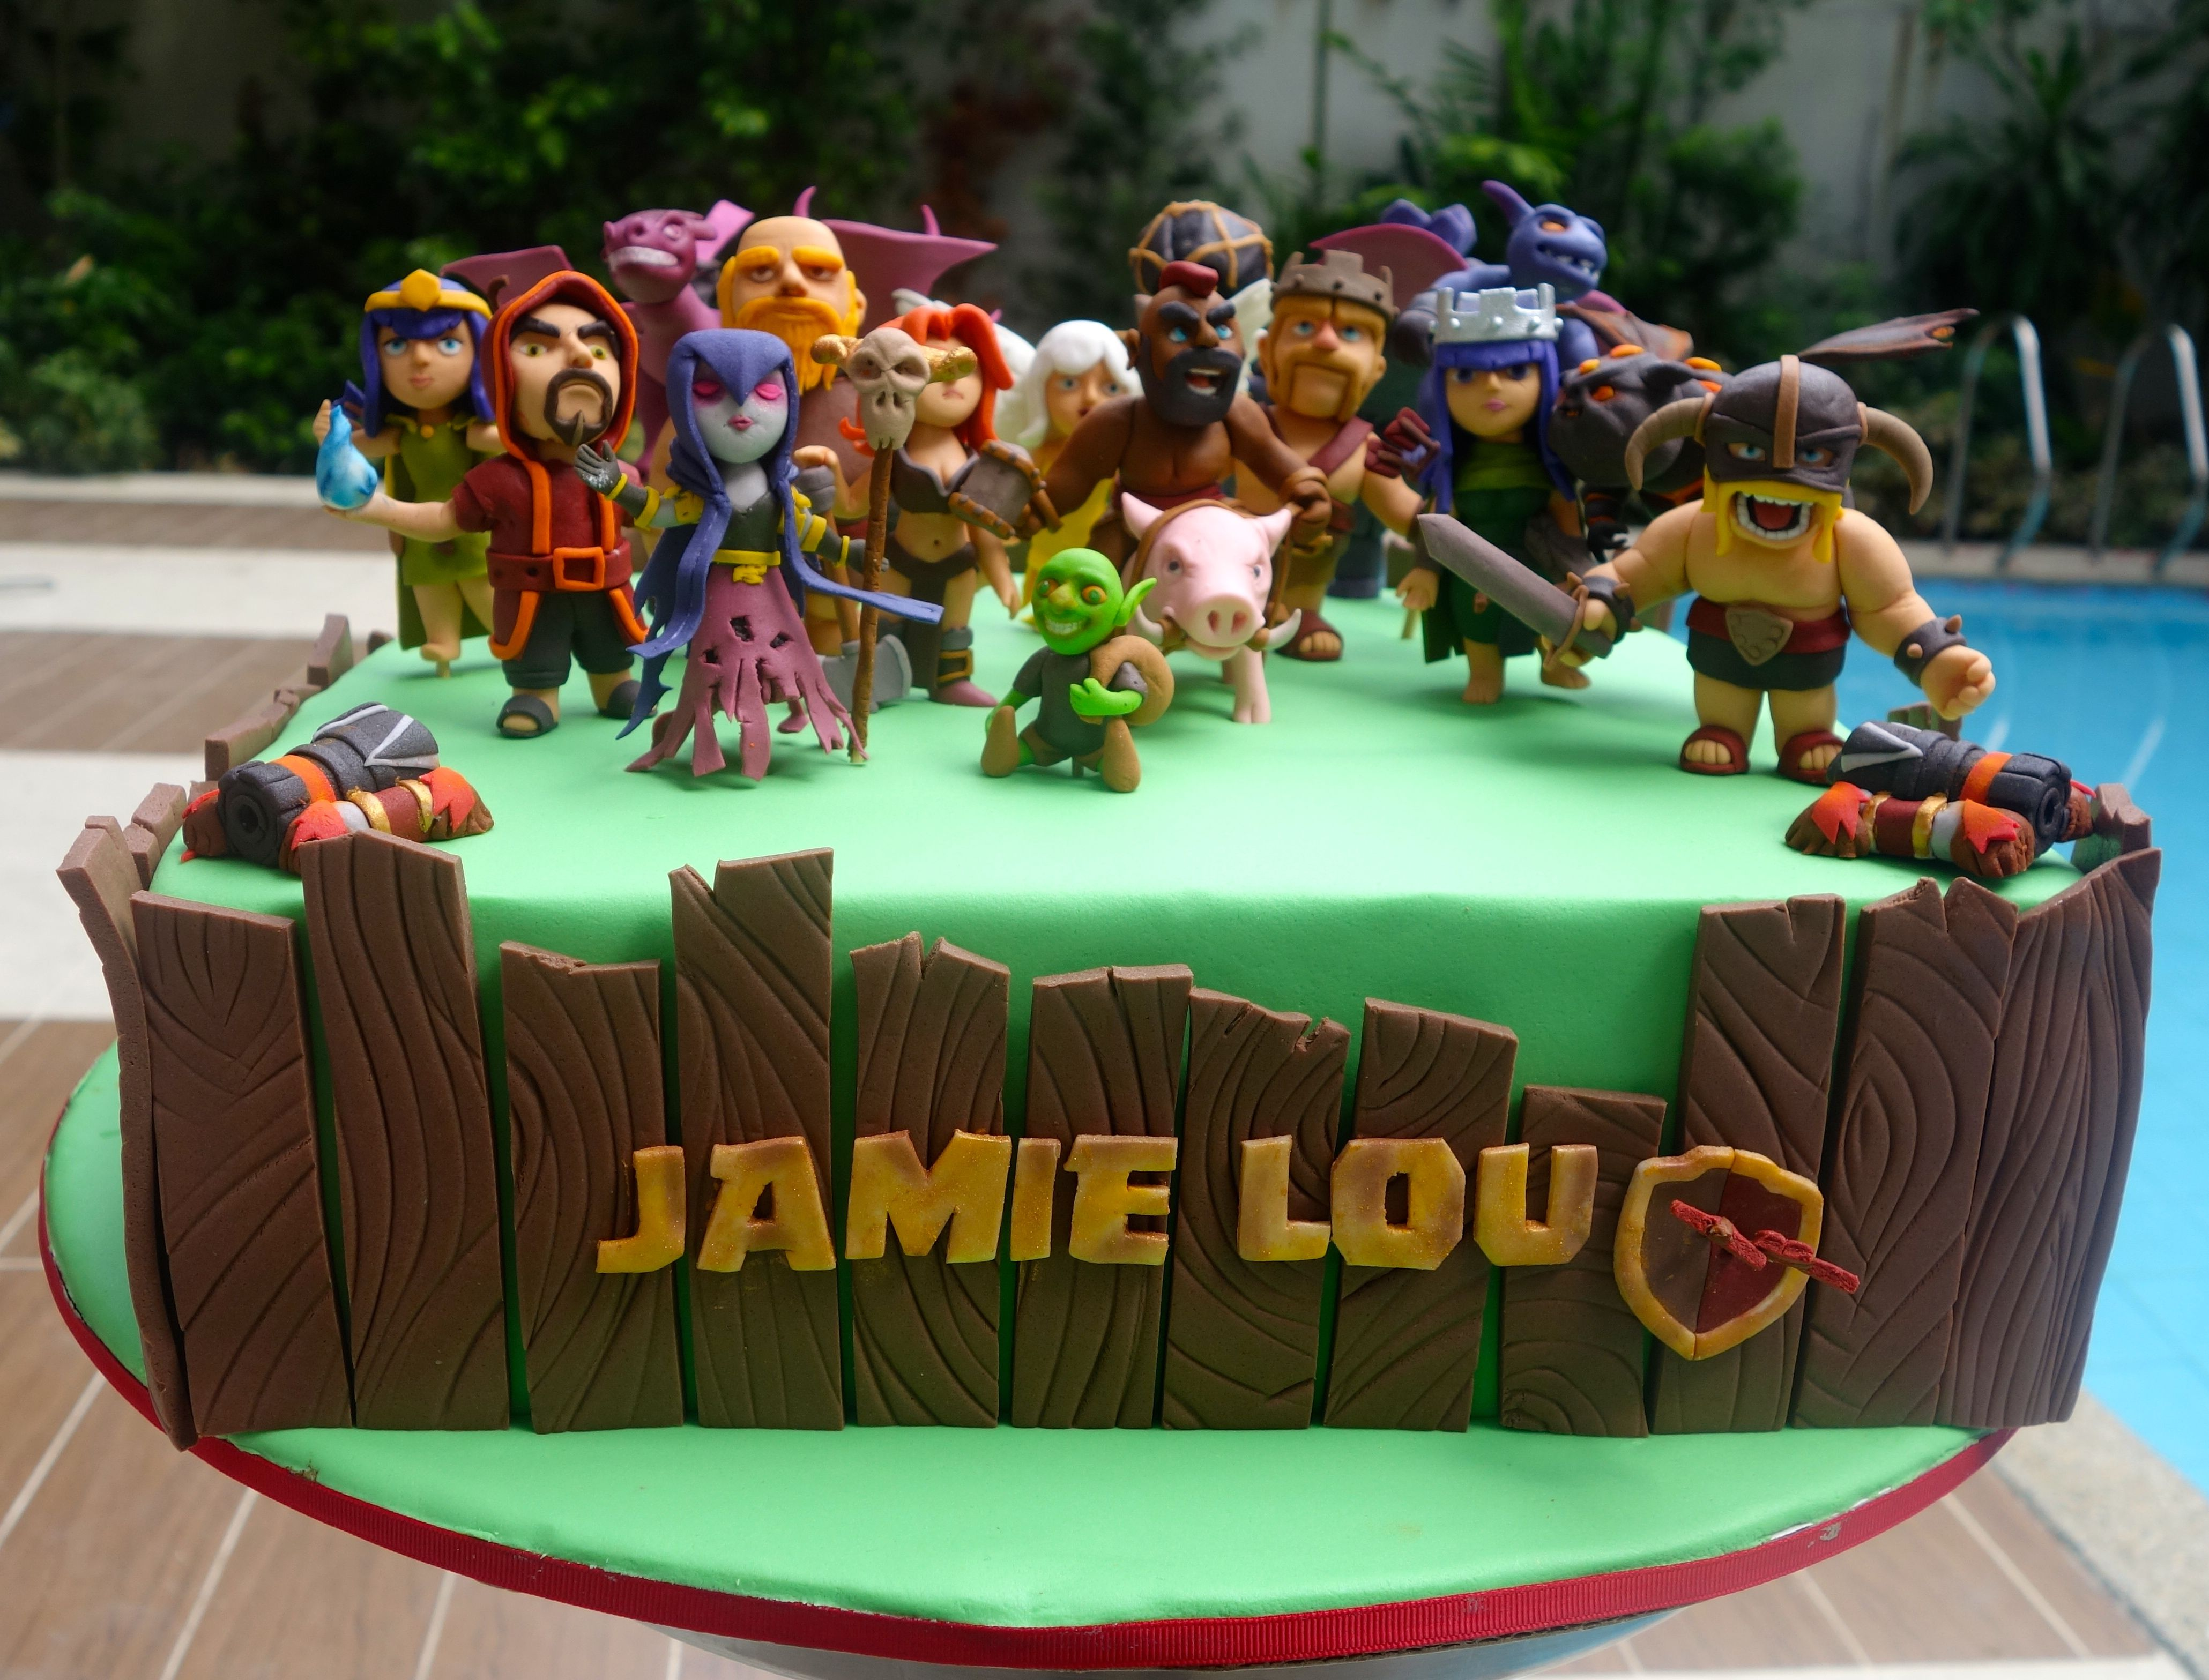 Clash Of Clans Cake Video Game Cakes Cake Party